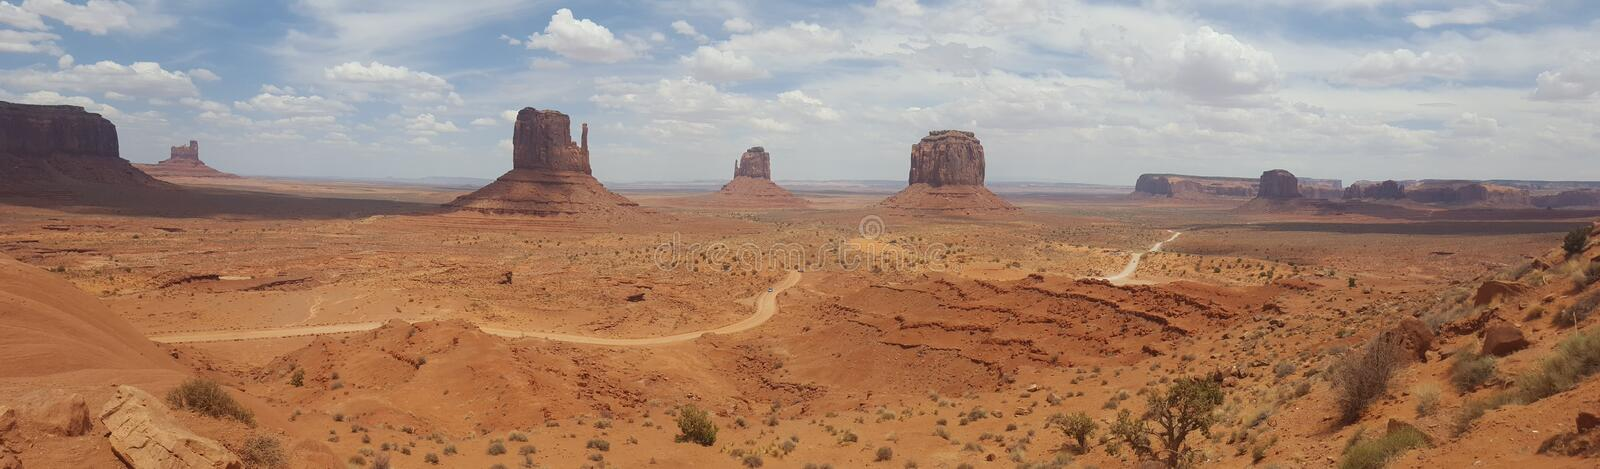 Plana Panorama Estados Unidos Monument Valley Arizona fotografia de stock